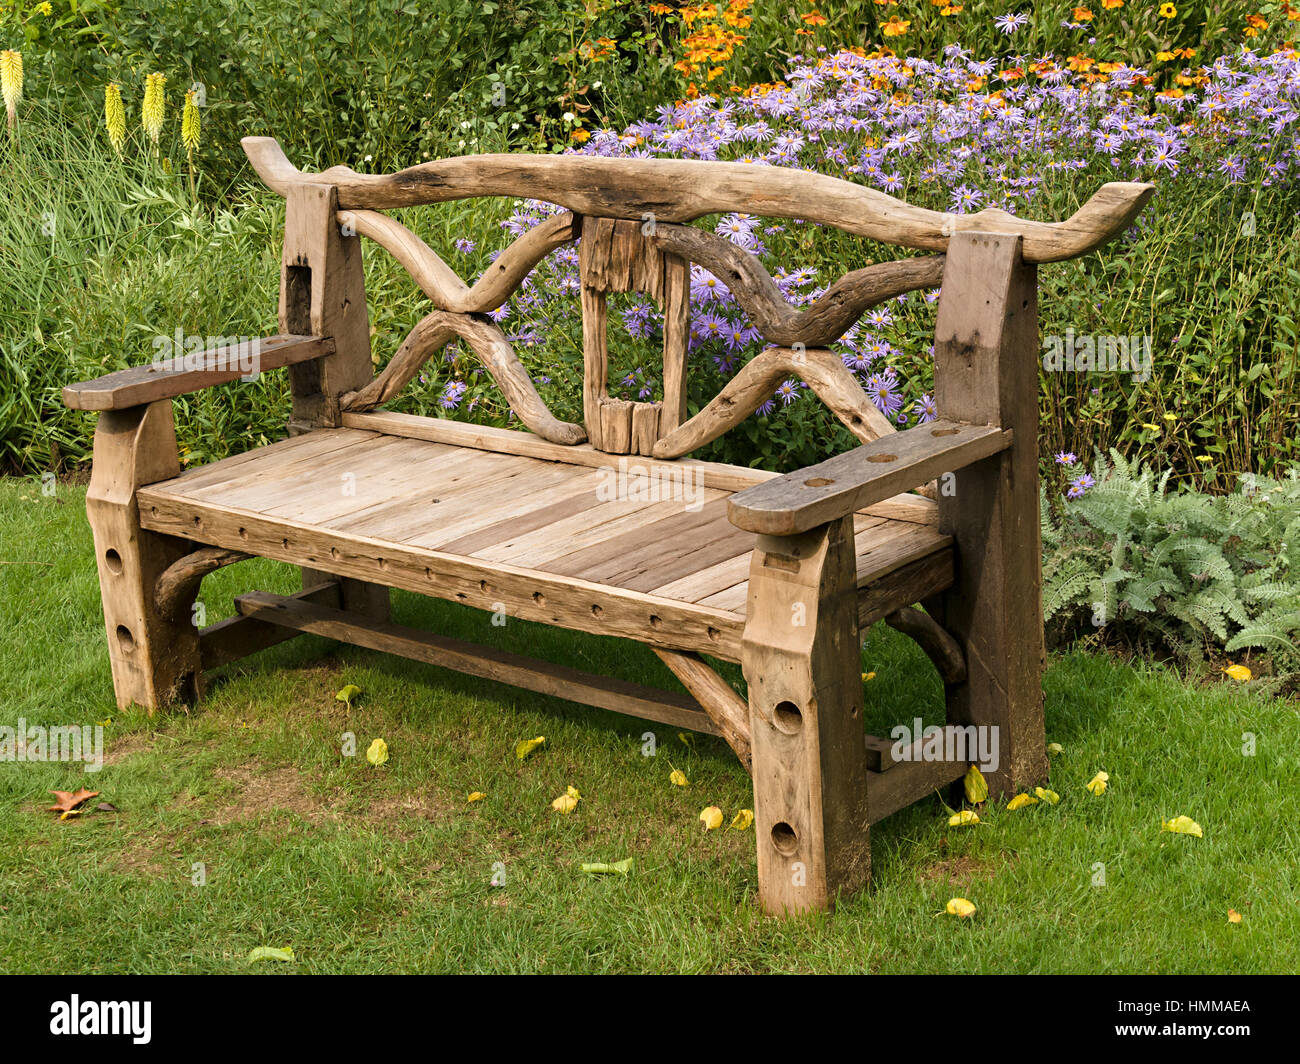 Rustic Wood Bench Stock Photos & Rustic Wood Bench Stock Images - Alamy